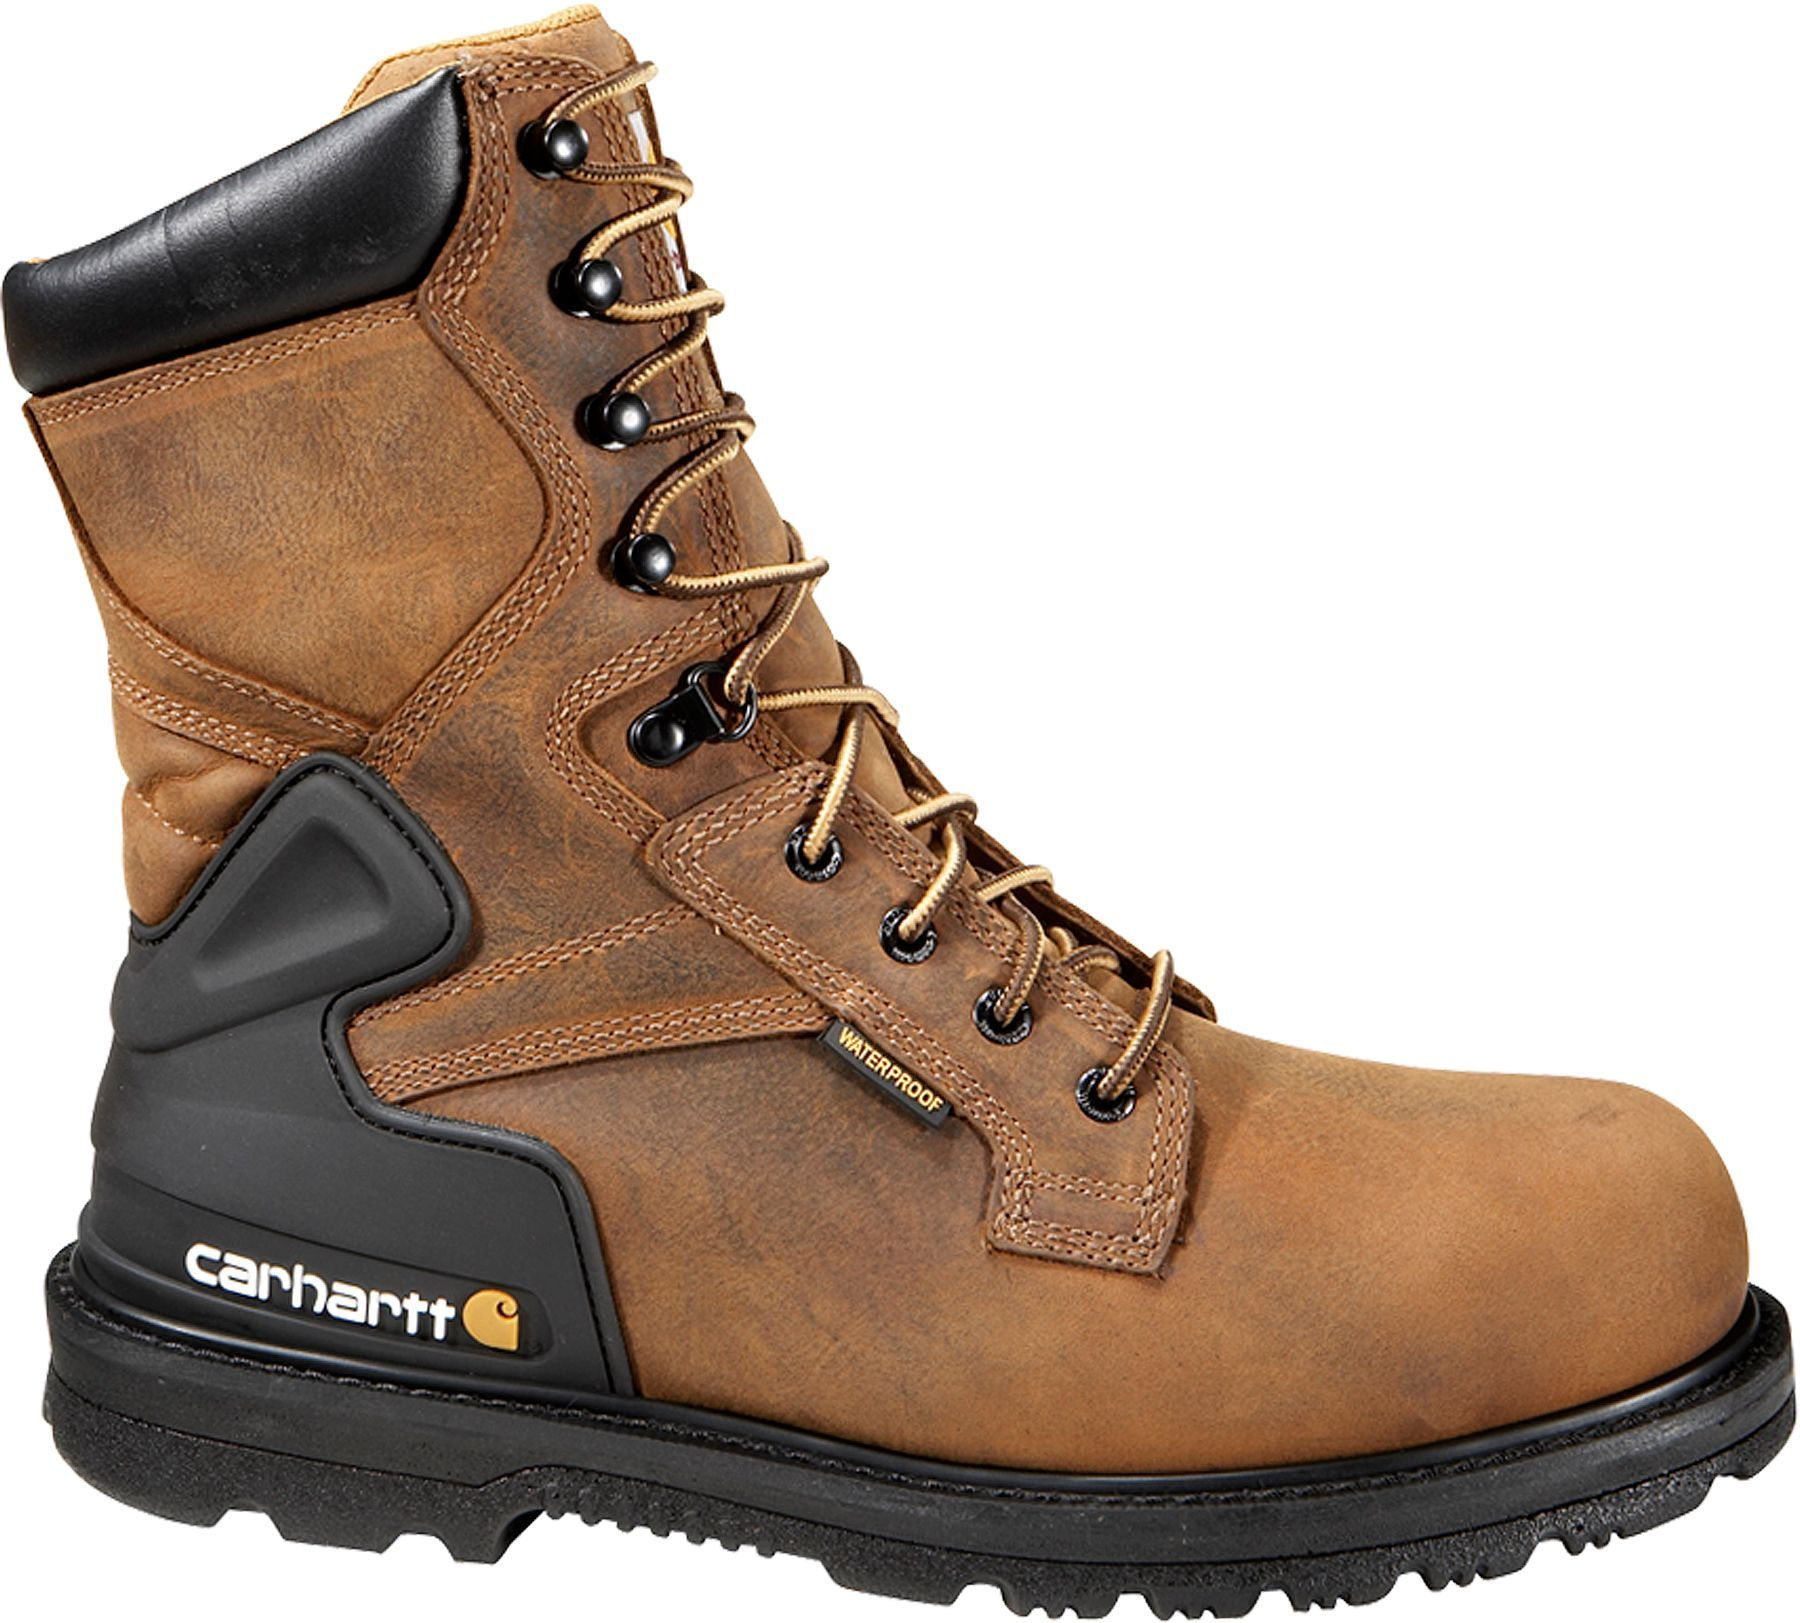 4a91ebd8992 Carhartt Men's Bison 8'' Waterproof Work Boots | Products | Carhartt ...